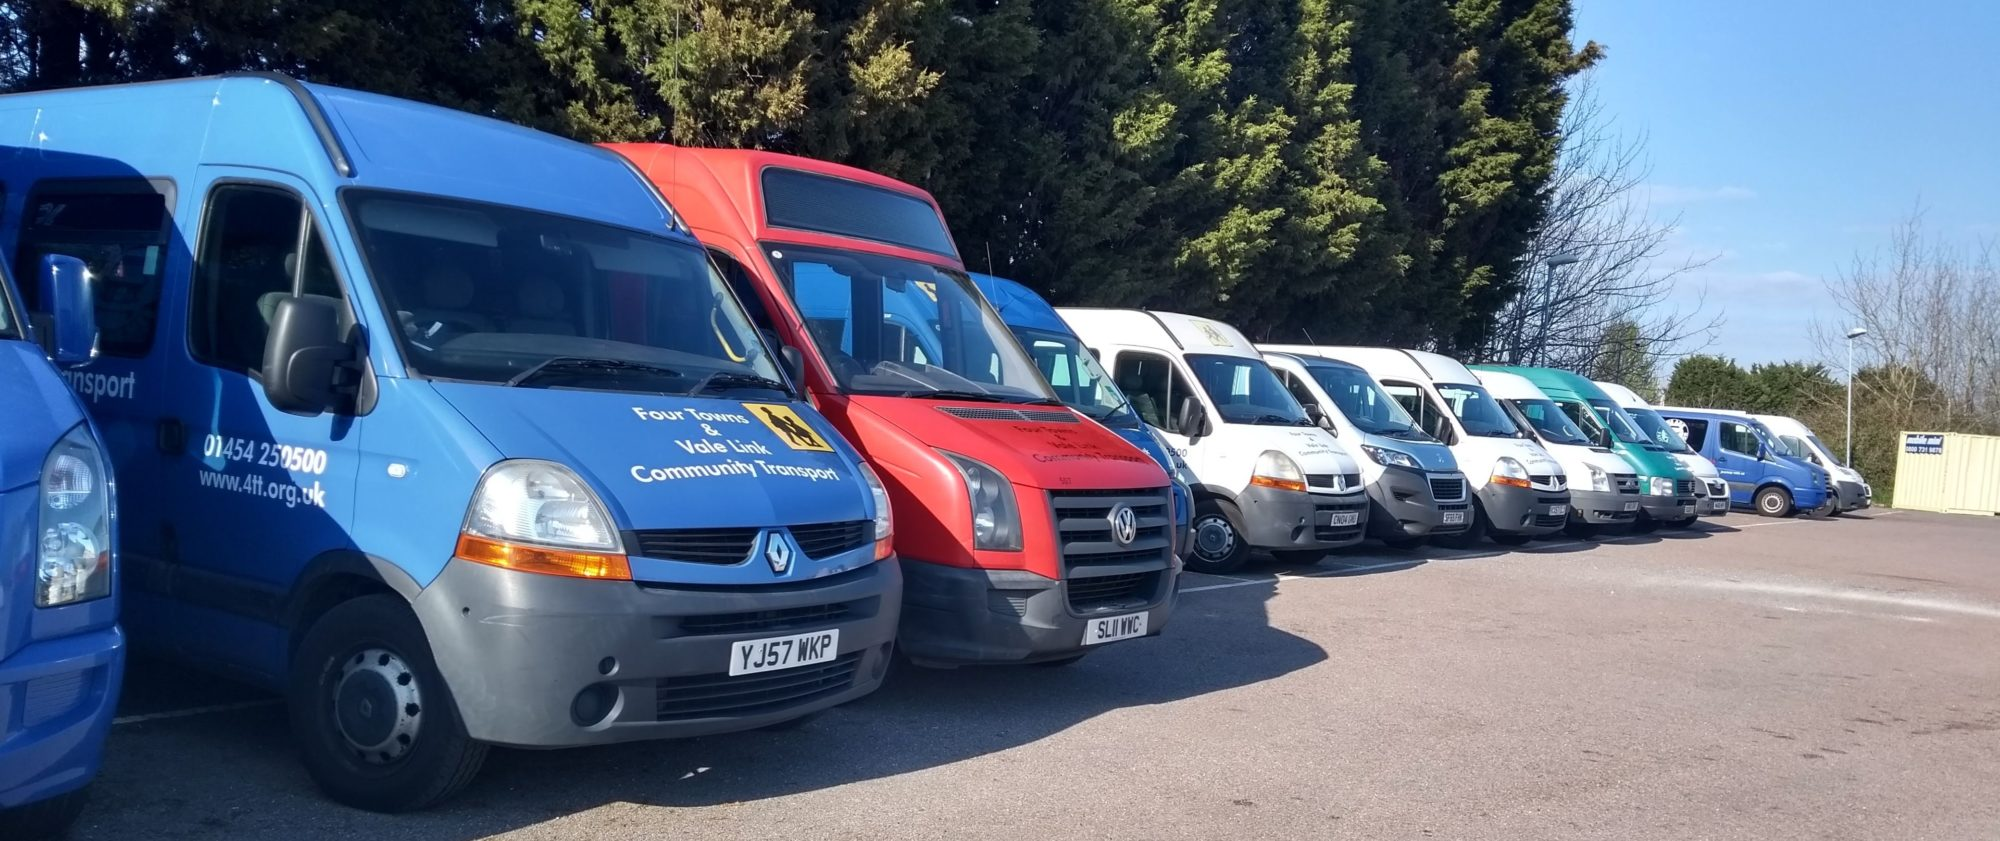 Four Towns and Vale Link Community Transport